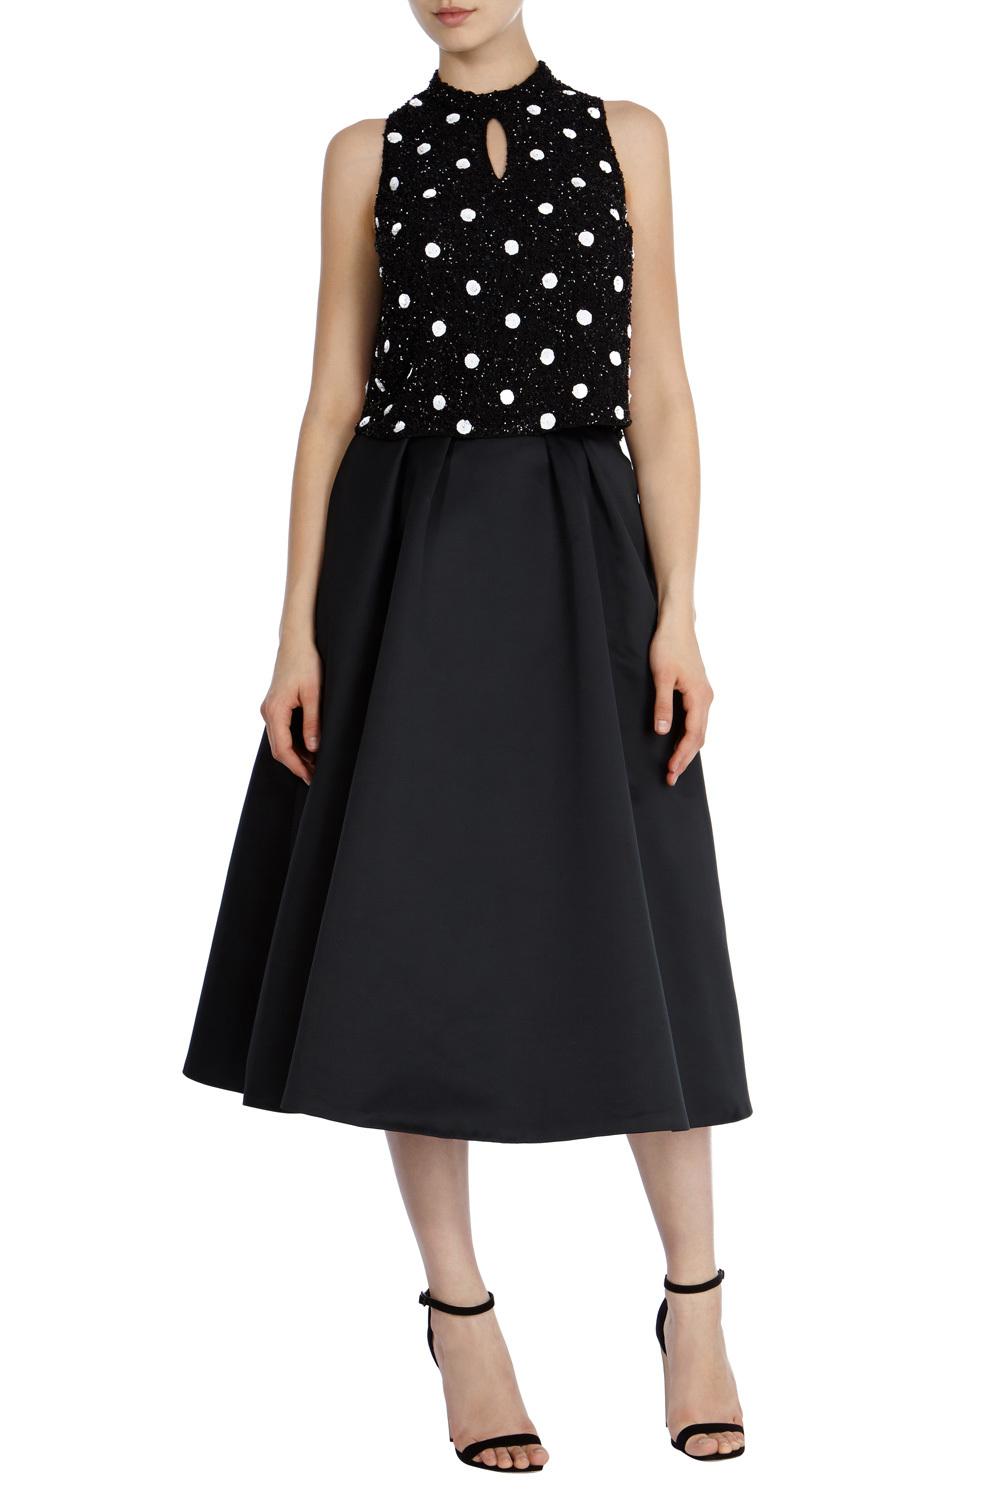 Elsa Spot Sequin Top - sleeve style: sleeveless; pattern: polka dot; secondary colour: white; predominant colour: black; occasions: evening; length: standard; style: top; neckline: peep hole neckline; fibres: polyester/polyamide - 100%; fit: body skimming; sleeve length: sleeveless; pattern type: fabric; pattern size: standard; texture group: other - light to midweight; embellishment: sequins; season: s/s 2016; wardrobe: event